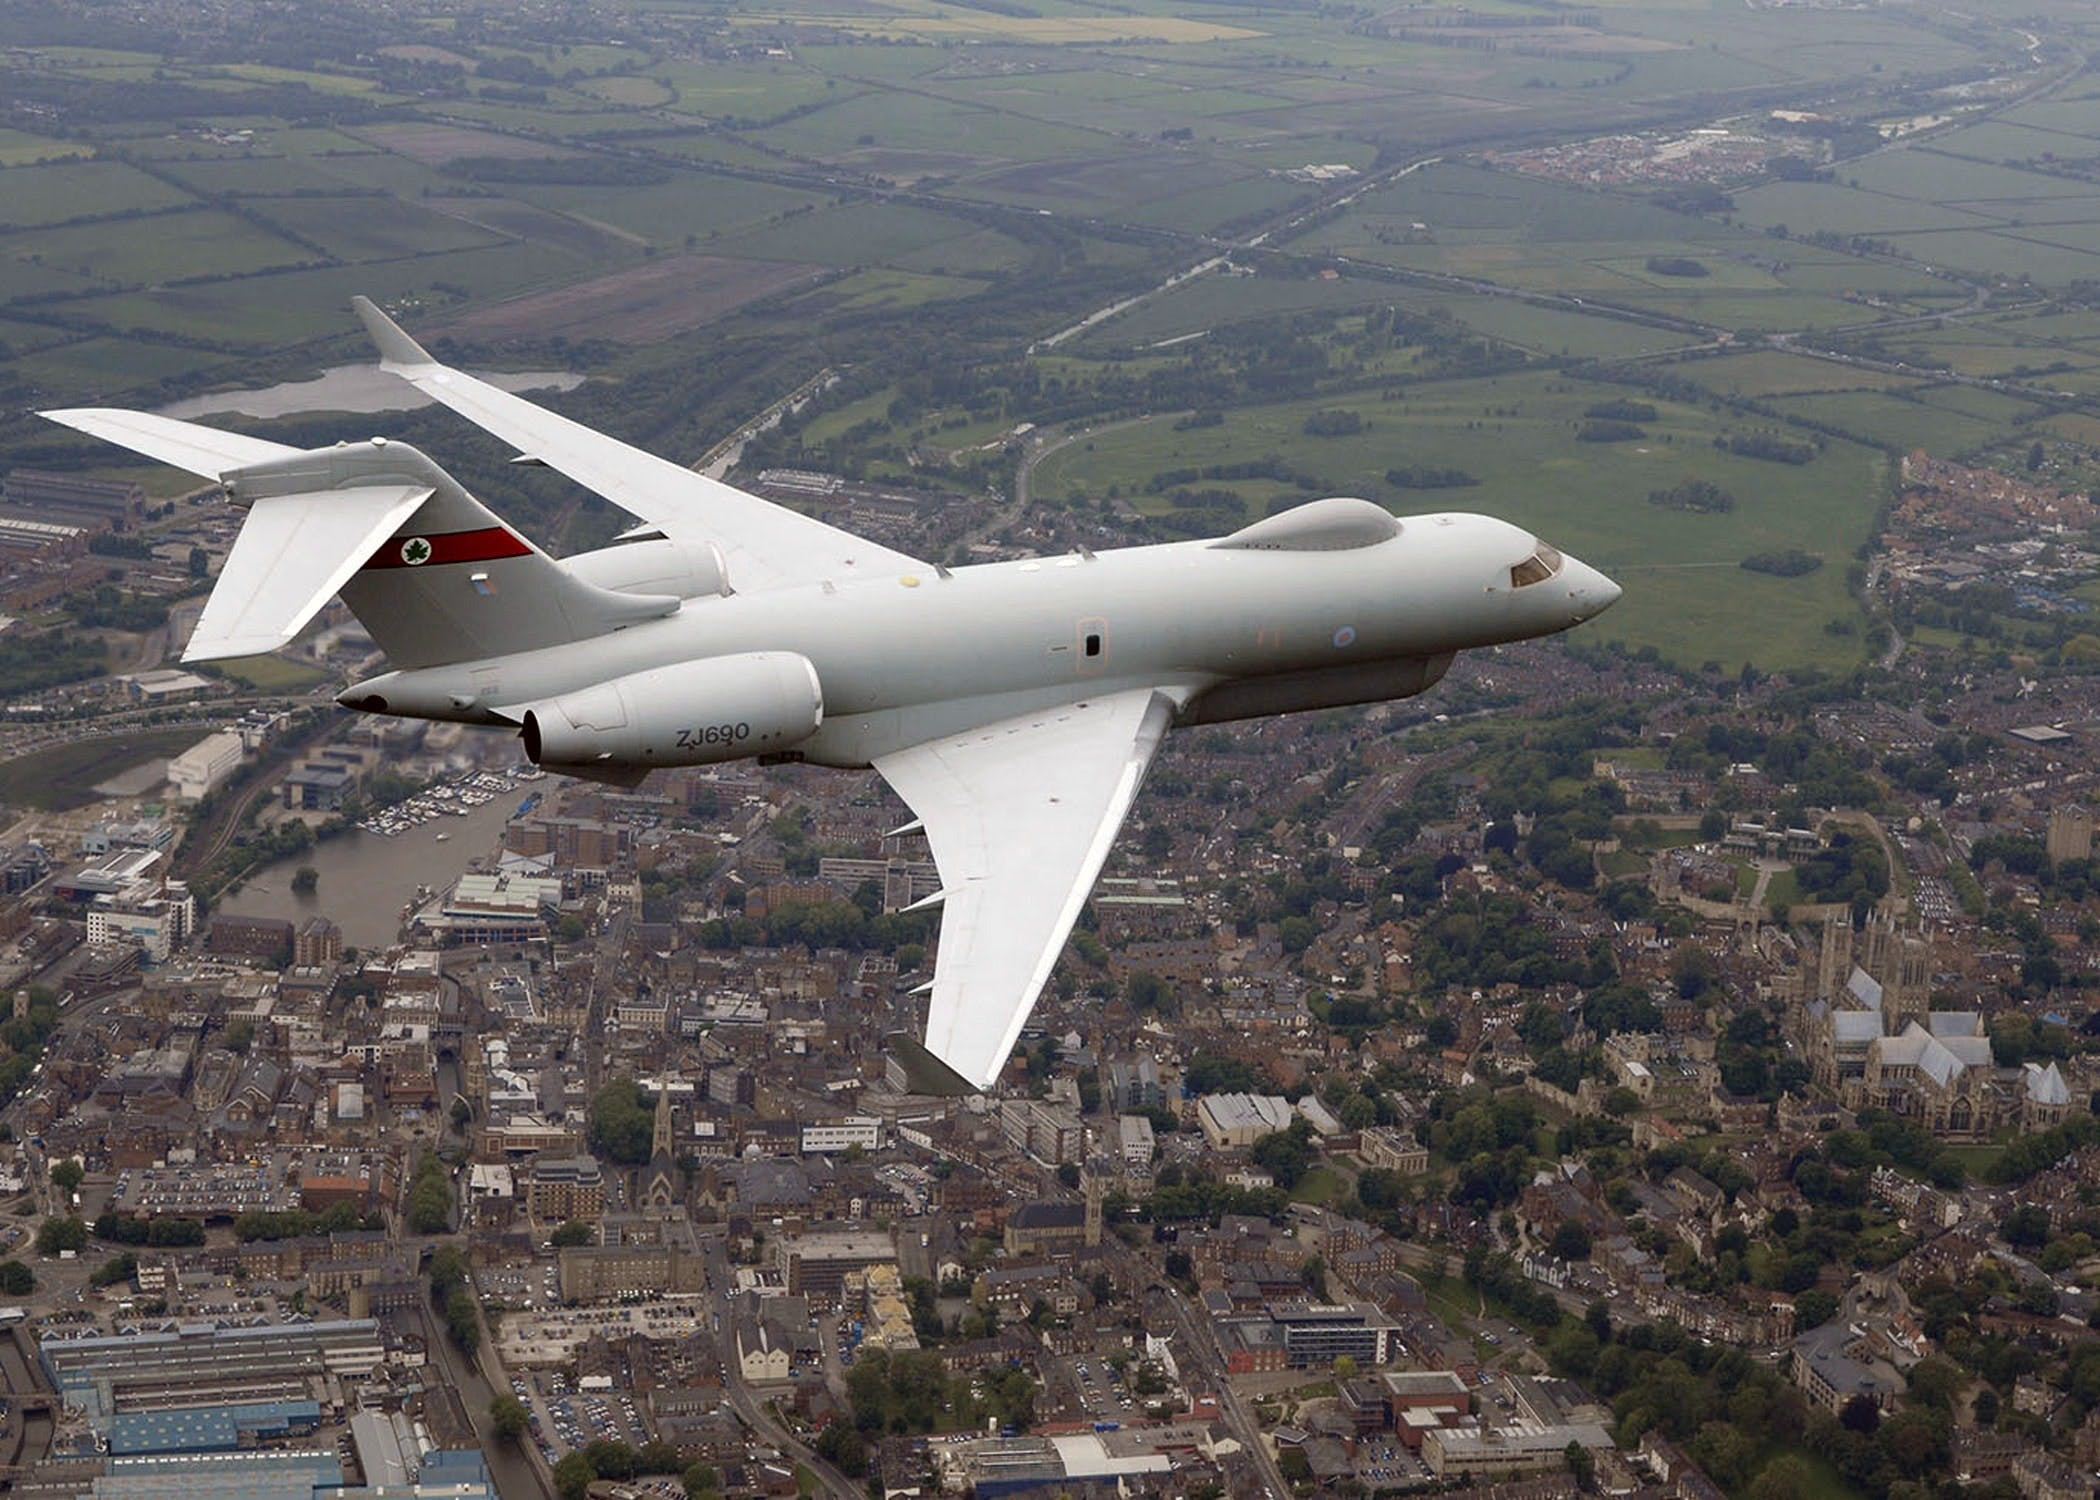 Sentinel R1 to be scrapped next year due to 'obsolescence'